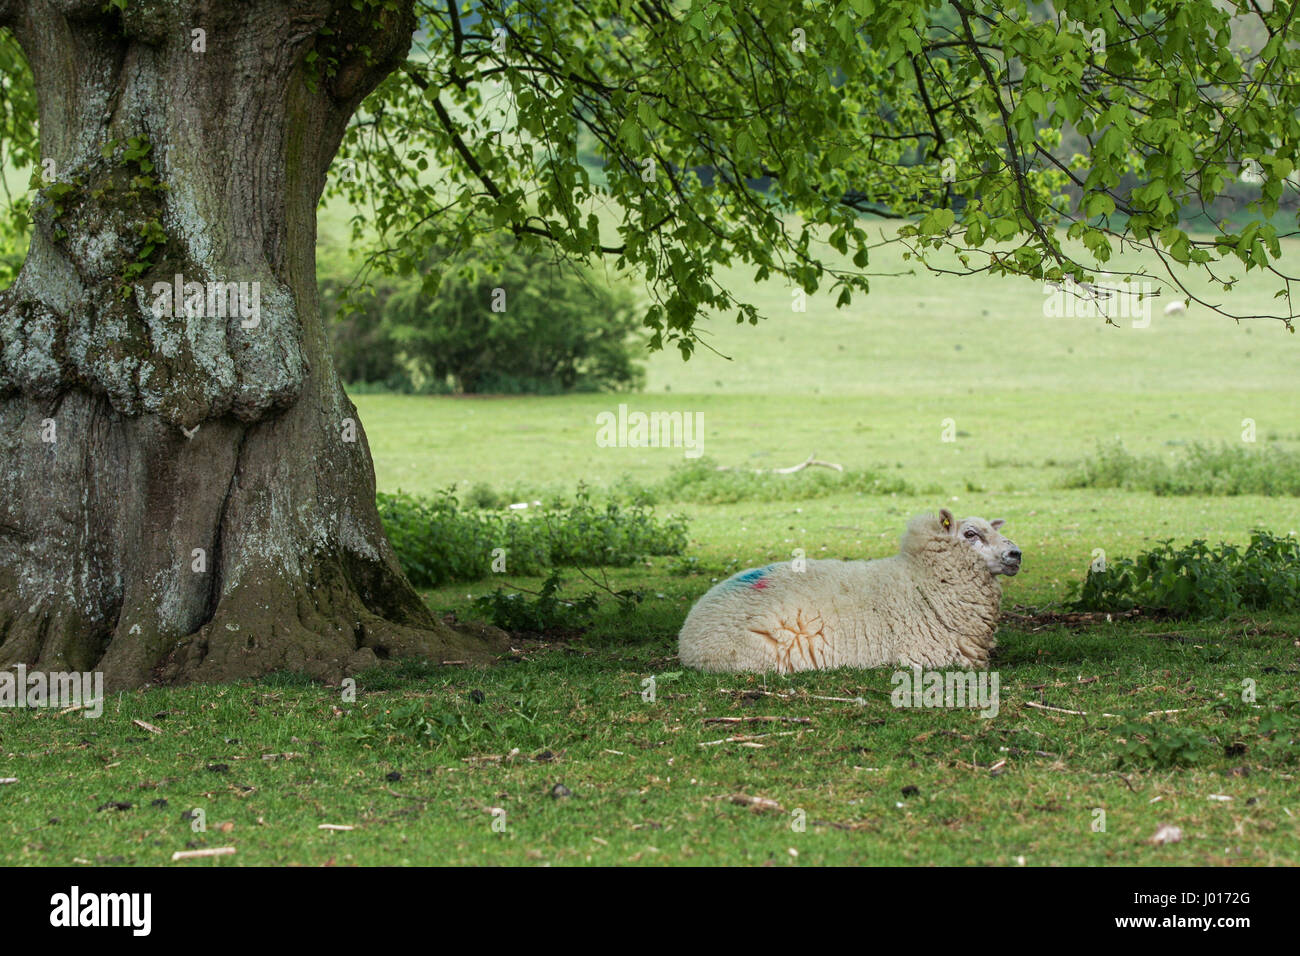 Adult sheep resting under a tree in a field of grass.She is laid down in the shade on the farm. - Stock Image